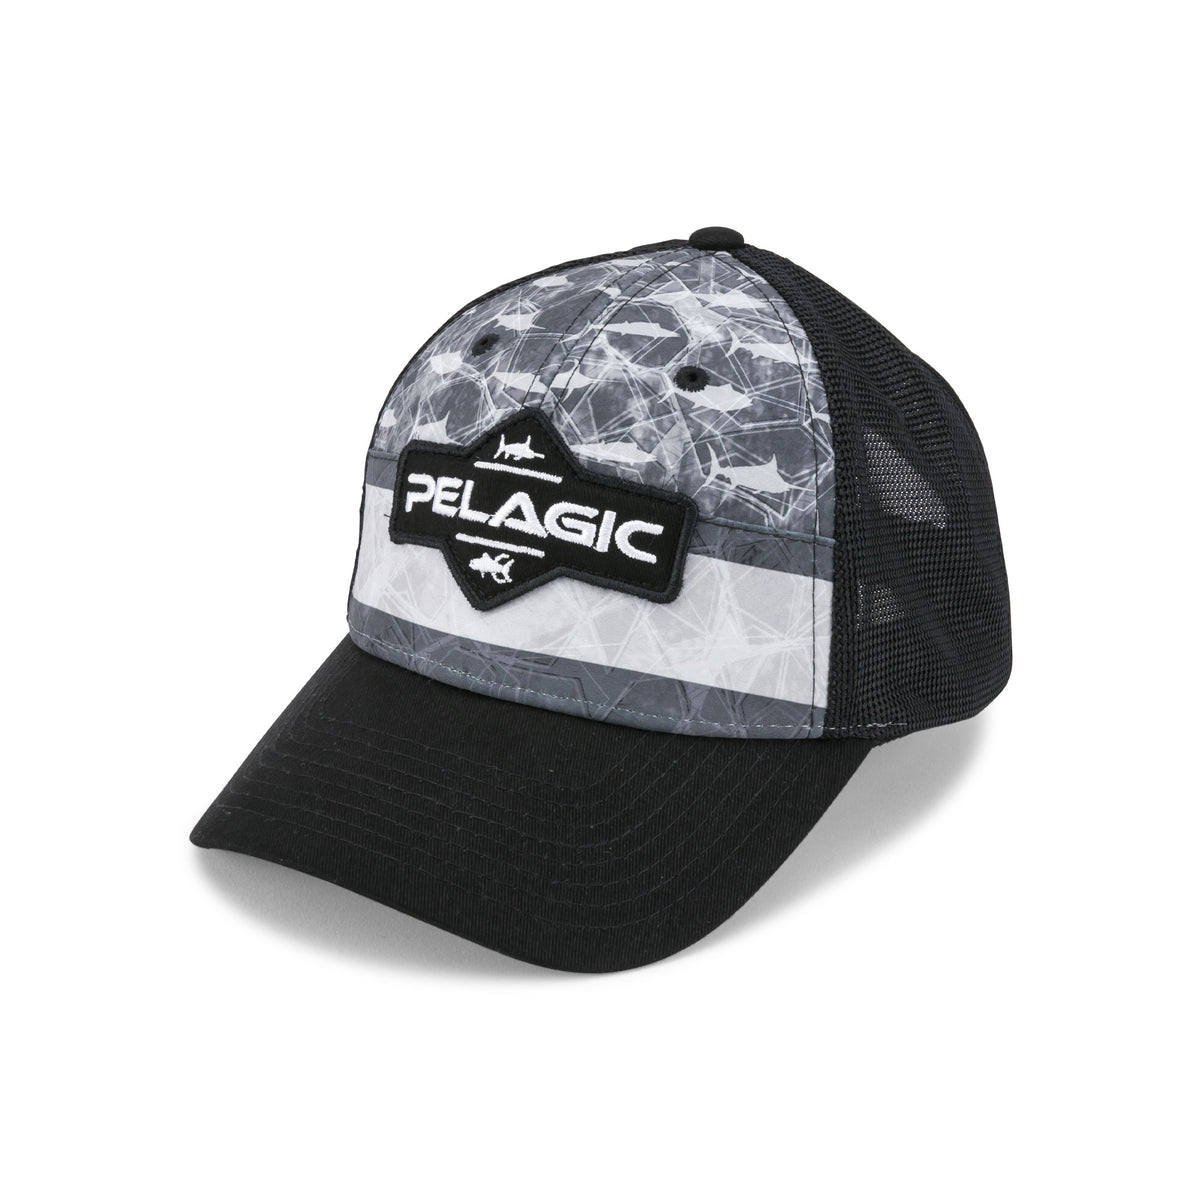 Offshore Print Fishing Hat Big Image - 1